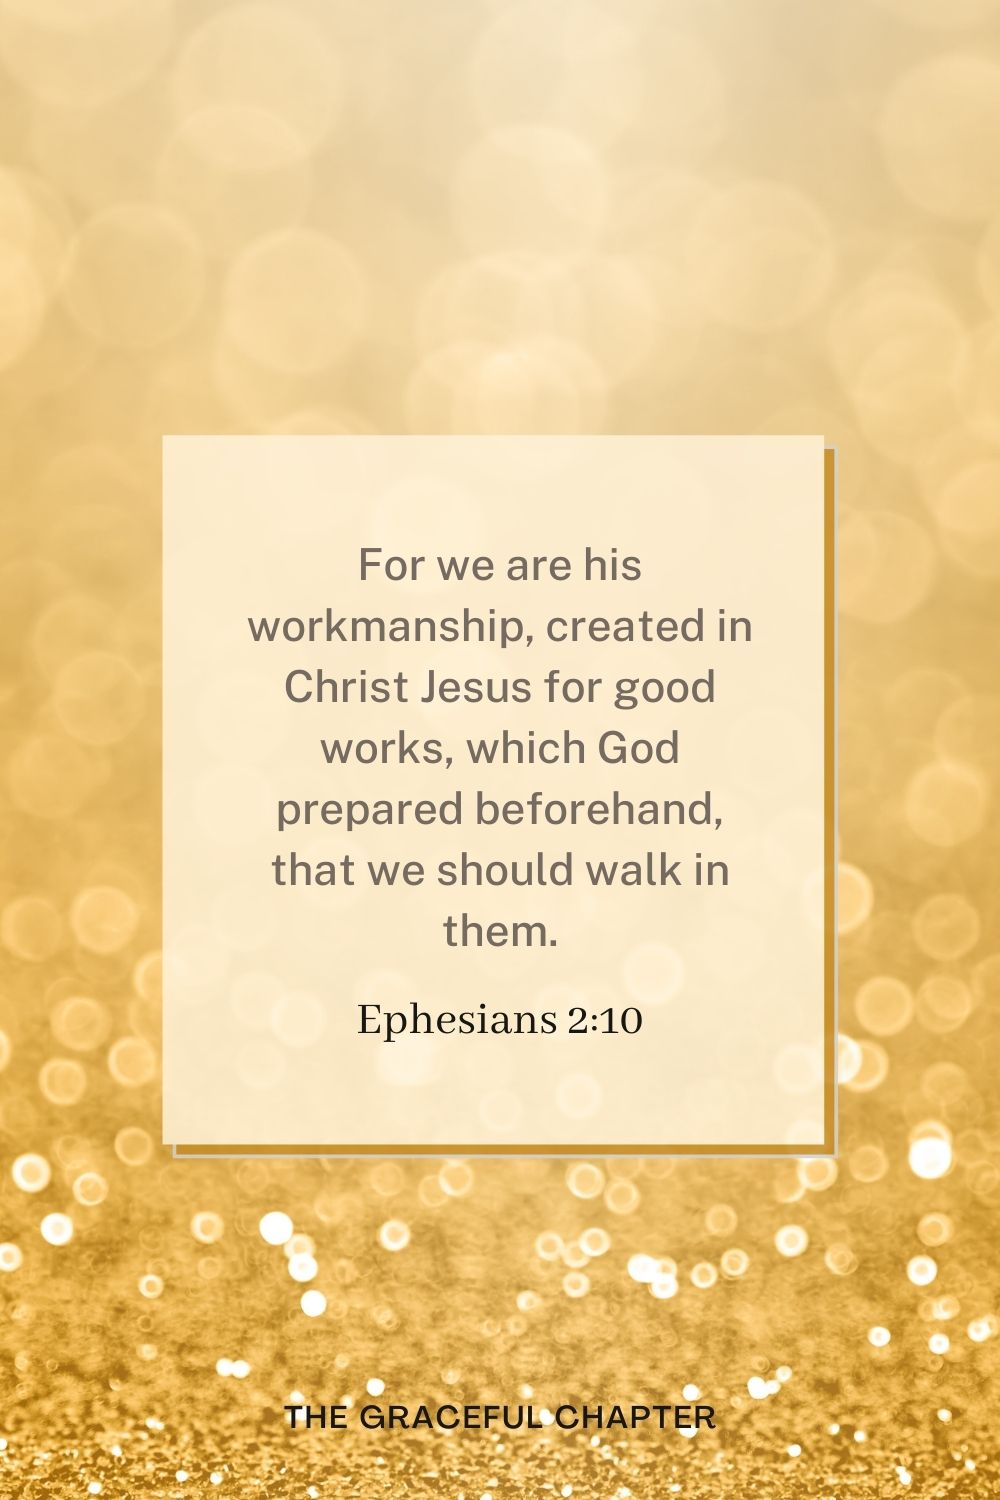 For we are his workmanship, created in Christ Jesus for good works, which God prepared beforehand, that we should walk in them. Ephesians 2:10